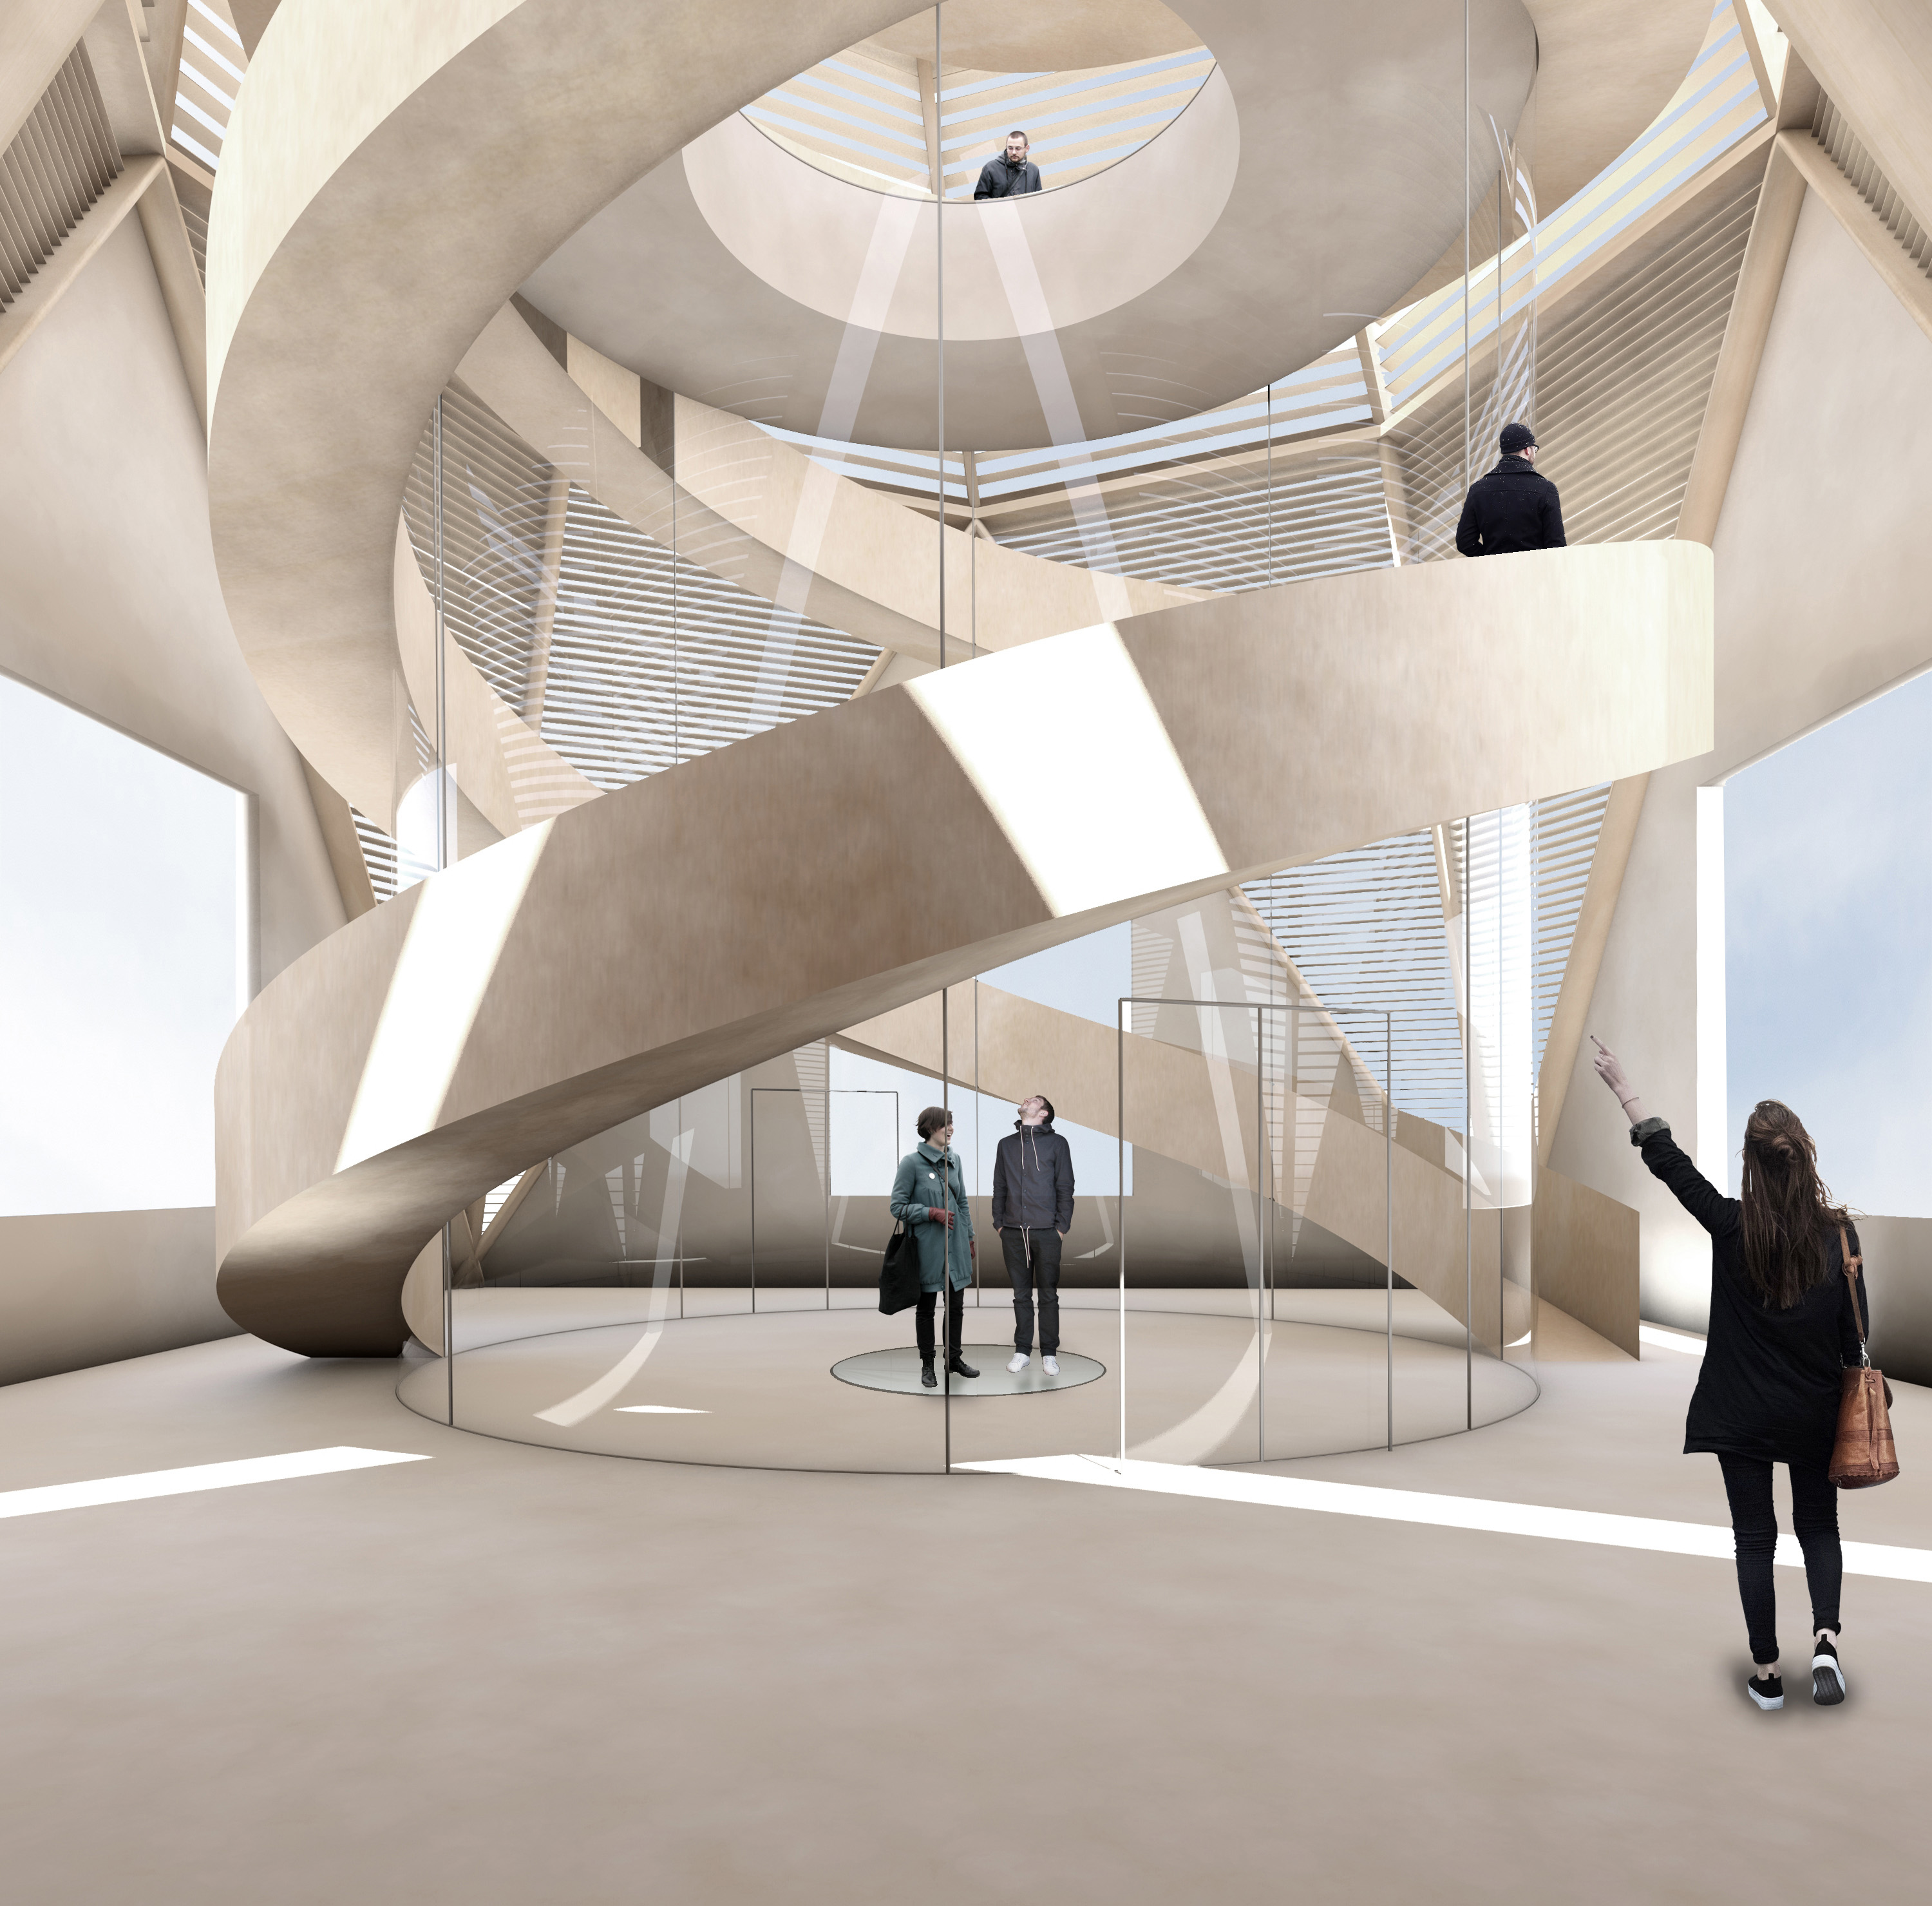 Quelle: heneghan peng architects